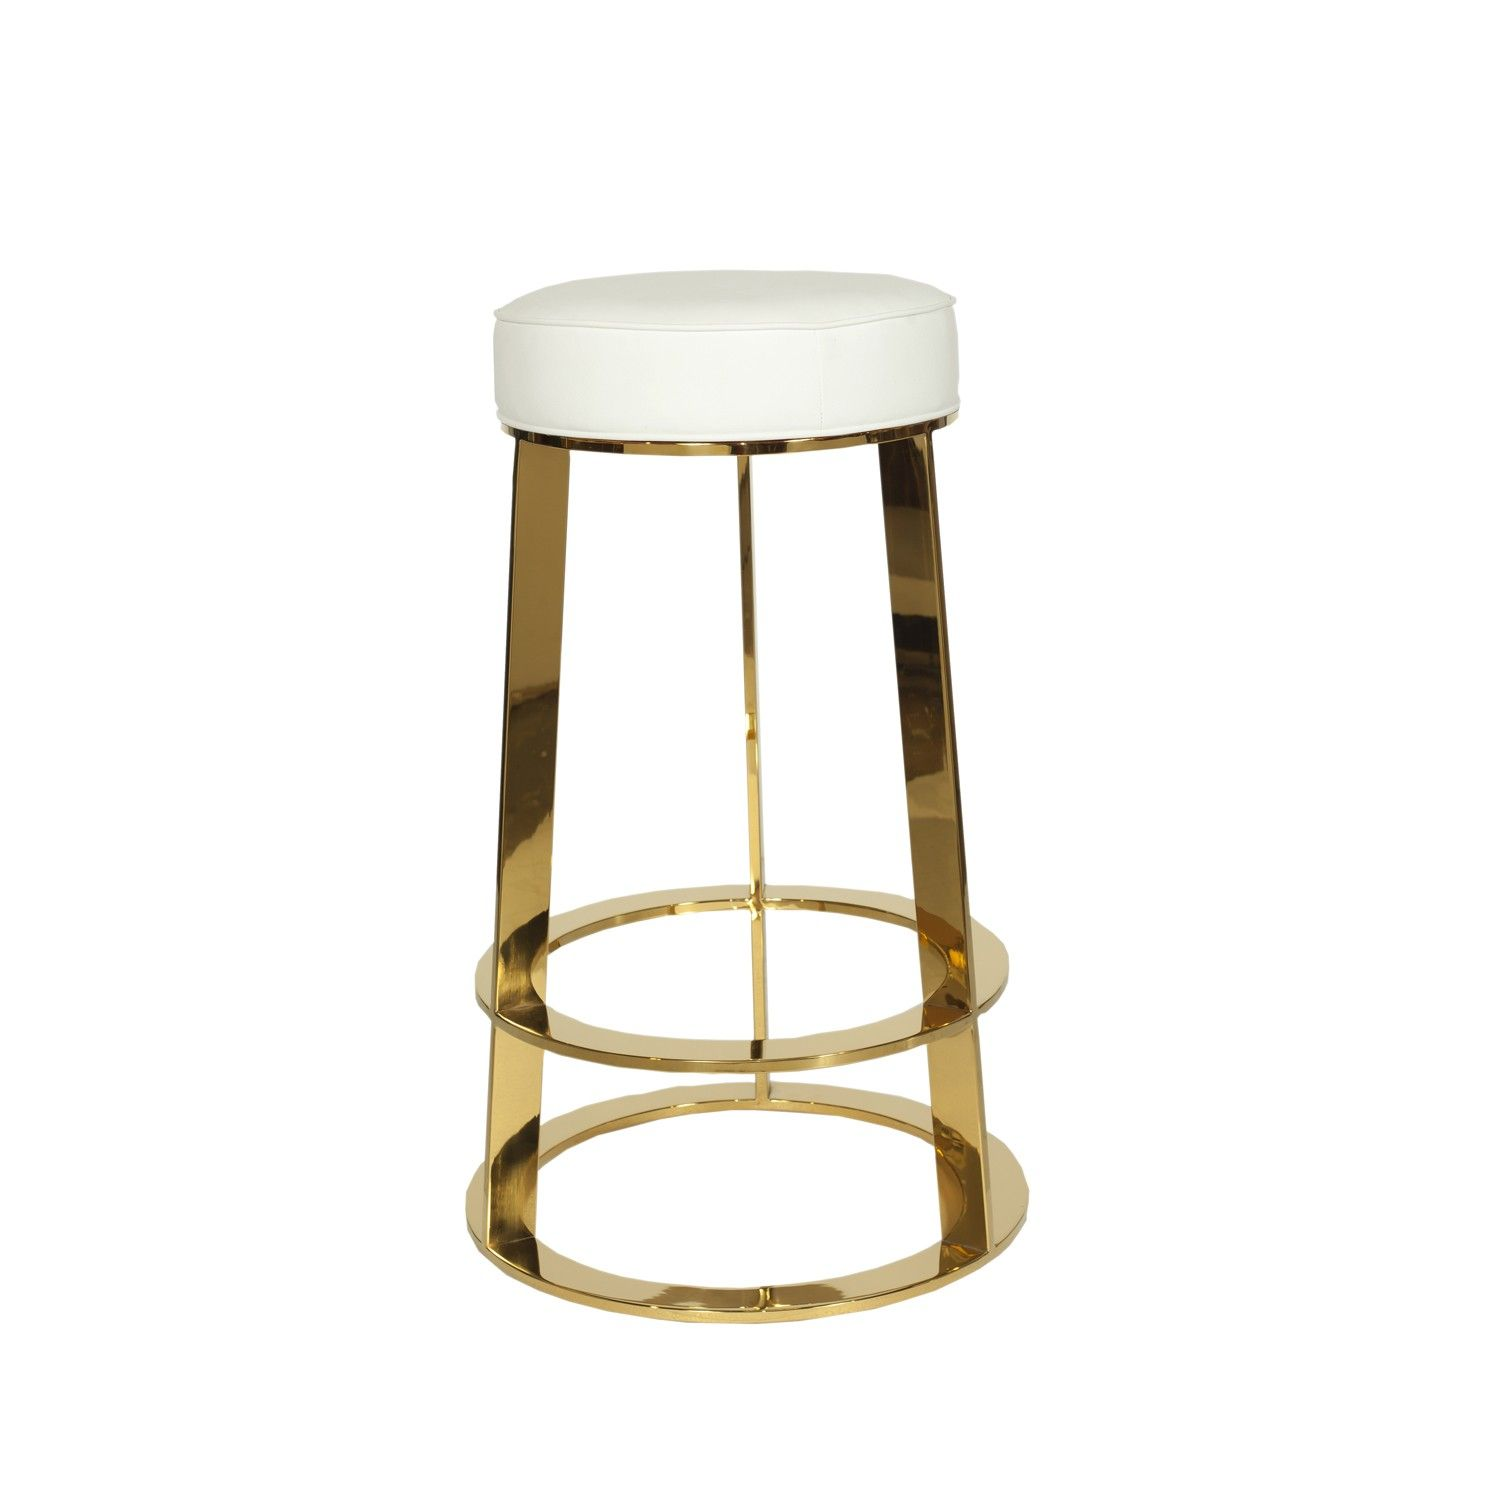 Samson Wh Brass Round Counter Stool With White Pu Leather Top Foot Rest Height From Ground 7 5 H Leather Counter Stools Counter Stools Bar Stools